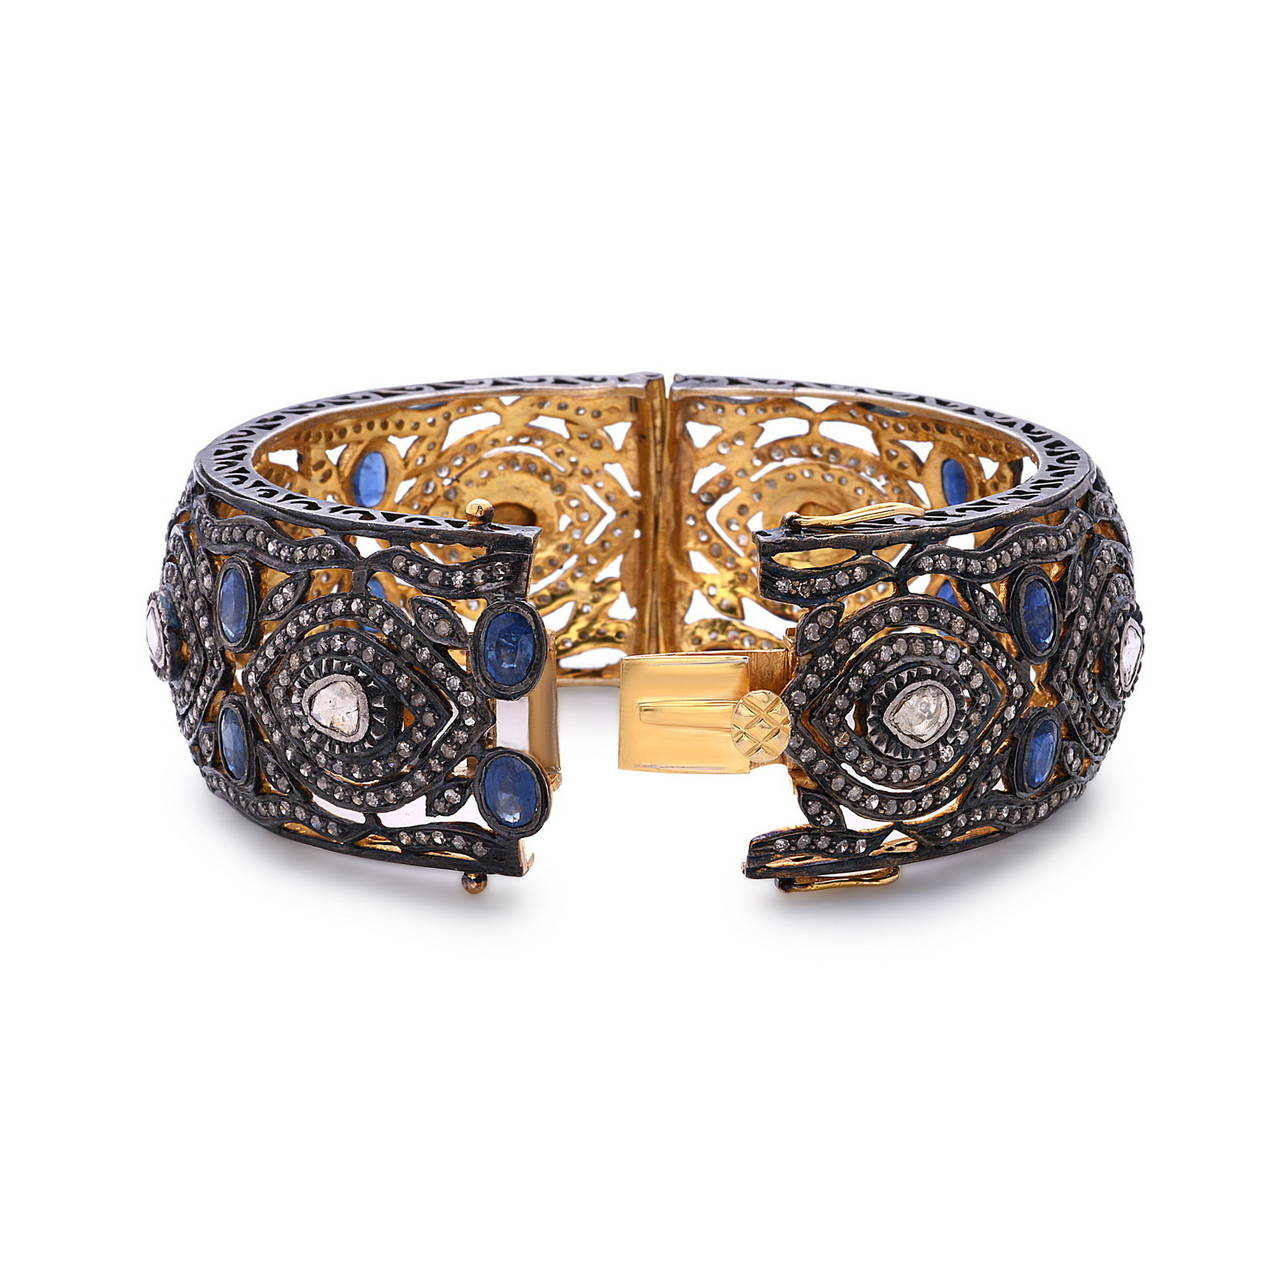 Beautiful hand carved filigree work bangle set in Gold & Silver with Diamonds, Blue Sapphire & Rose cut Diamonds. It is an openable bangle with 2 safety clasps. 